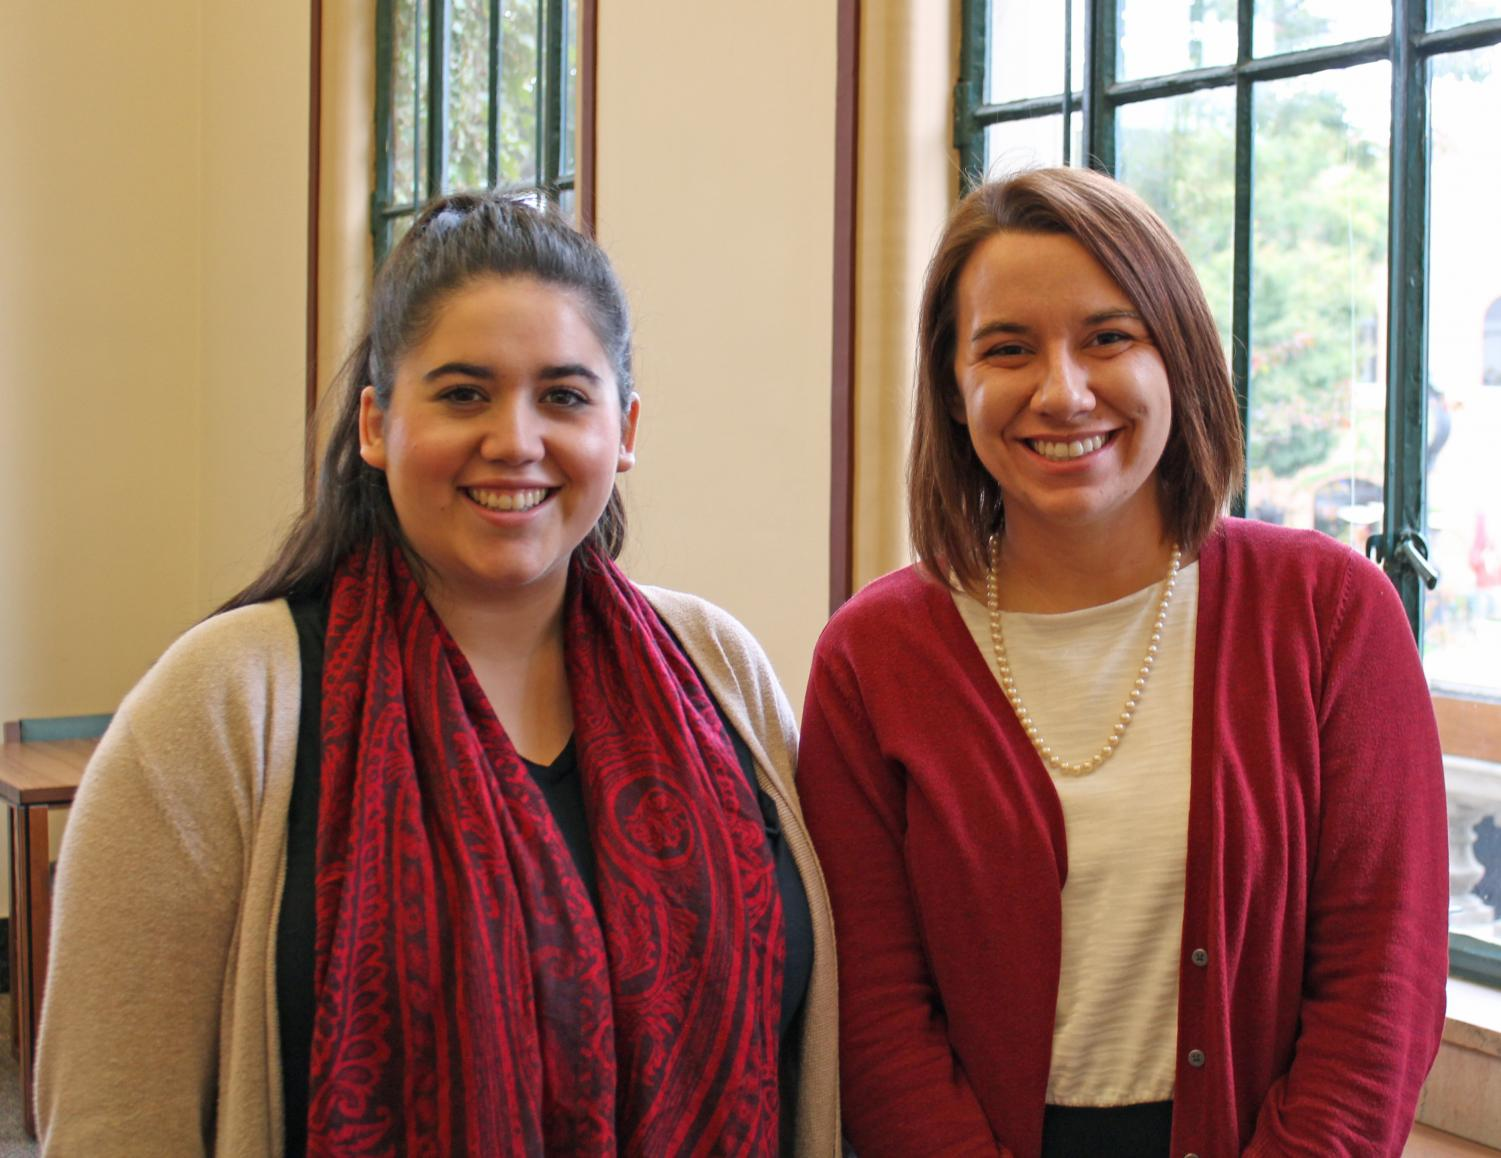 Angela Solis and Kelsey Pietens, apprentices at the Urbana Free Library, were chosen among 40 applicants for the opportunity to gain hands-on experience in a library.